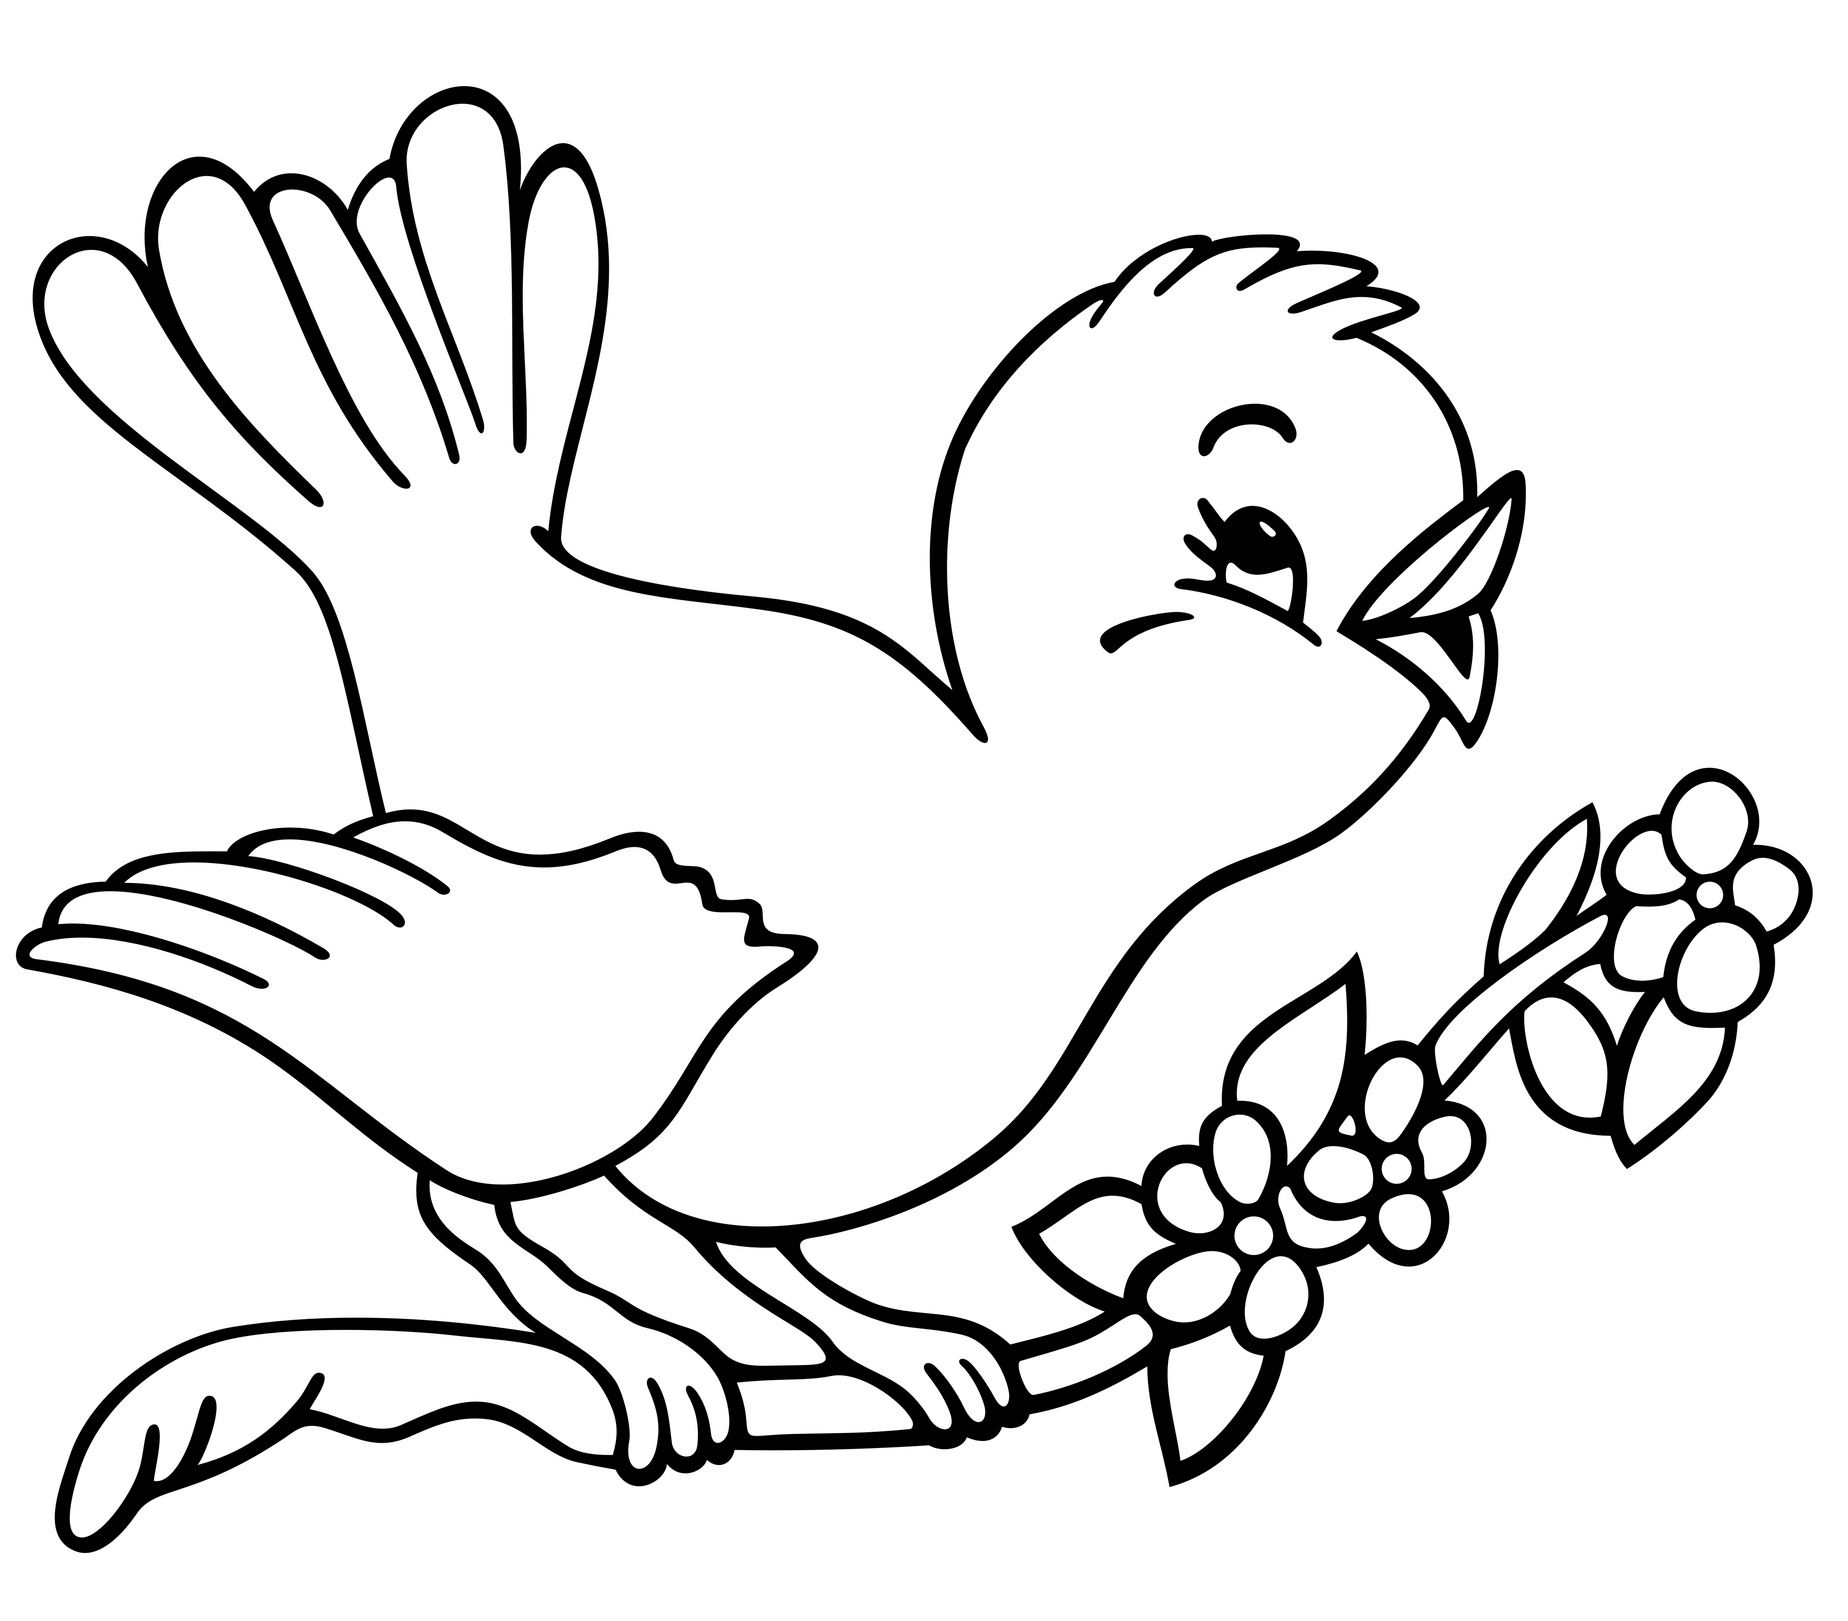 free bird coloring pages for kids animals kids coloring pages pinterest kids animals